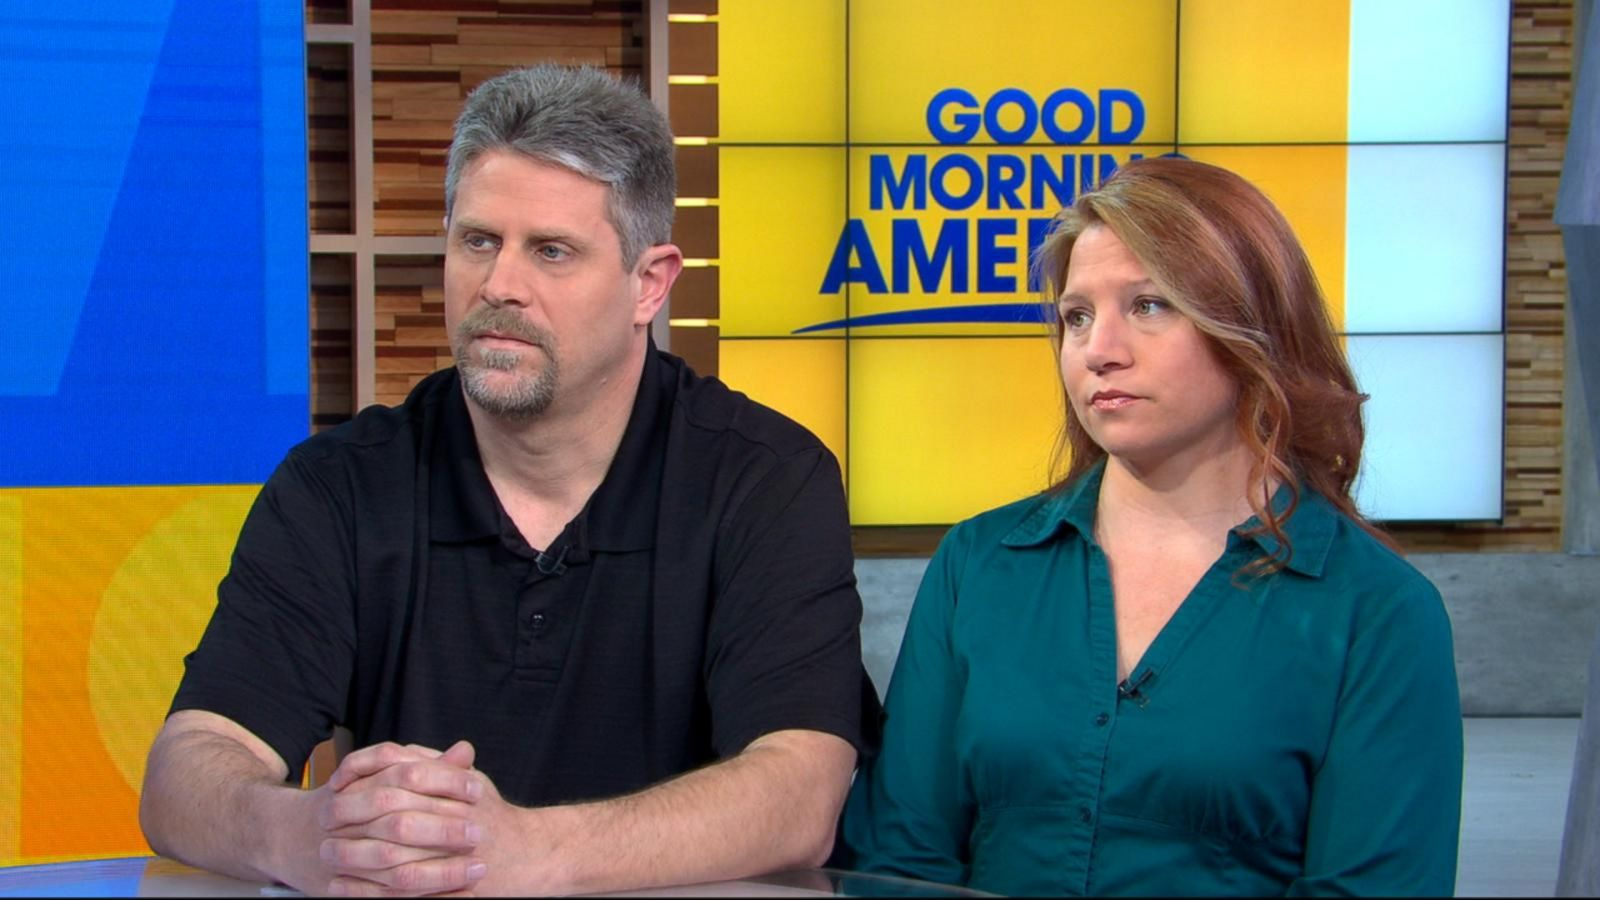 VIDEO: Parents of Accused Teen Stabber in 'Slenderman' Case Speak Out for the 1st Time